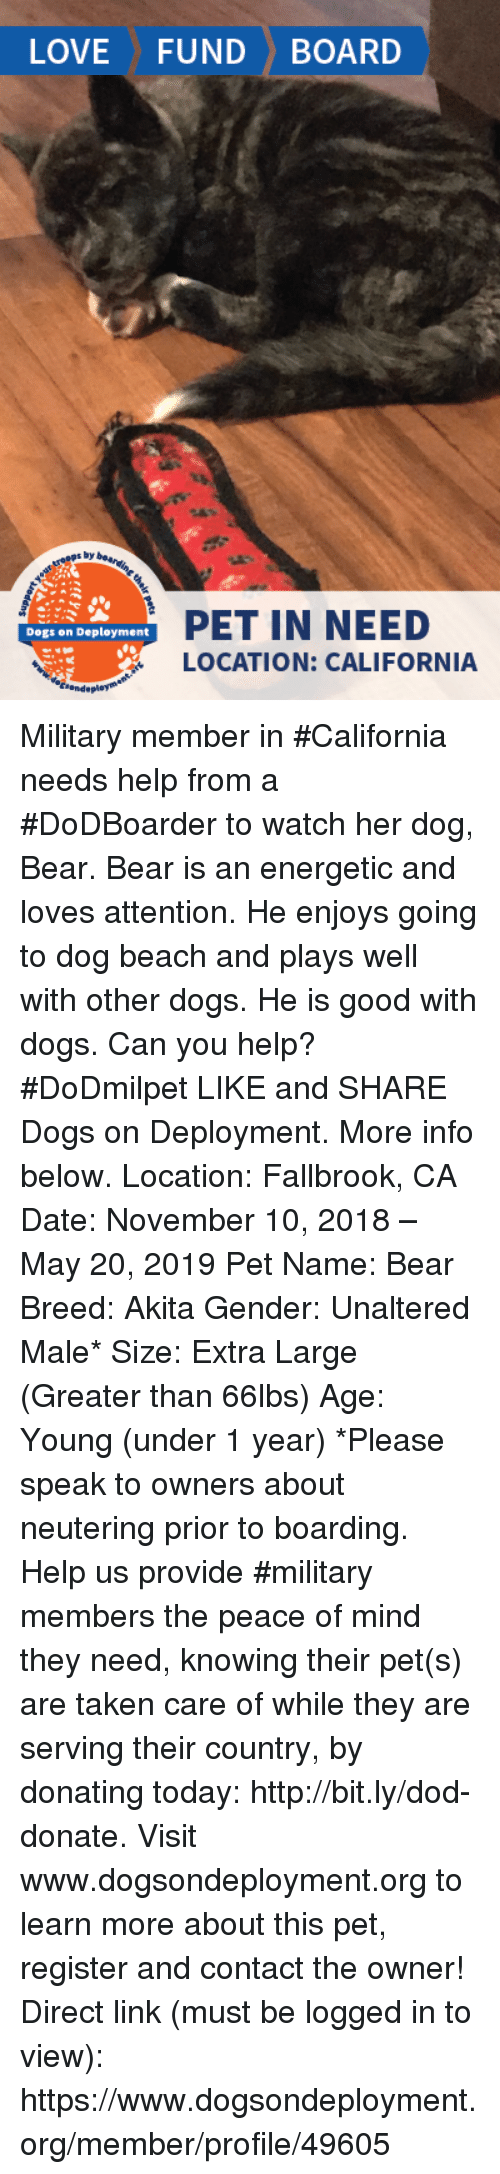 Dogs, Memes, and Taken: LOVEFUNDBOARD  s by  PET IN NEED  LOCATION: CALIFORNIA  Dogs on Deployment Military member in #California needs help from a #DoDBoarder to watch her dog, Bear. Bear is an energetic and loves attention. He enjoys going to dog beach and plays well with other dogs. He is good with dogs. Can you help? #DoDmilpet   LIKE and SHARE Dogs on Deployment. More info below.   Location: Fallbrook, CA Date: November 10, 2018 – May 20, 2019 Pet Name: Bear Breed: Akita Gender: Unaltered Male* Size: Extra Large (Greater than 66lbs) Age: Young (under 1 year)  *Please speak to owners about neutering prior to boarding.  Help us provide #military members the peace of mind they need, knowing their pet(s) are taken care of while they are serving their country, by donating today: http://bit.ly/dod-donate.   Visit www.dogsondeployment.org to learn more about this pet, register and contact the owner!  Direct link (must be logged in to view):  https://www.dogsondeployment.org/member/profile/49605